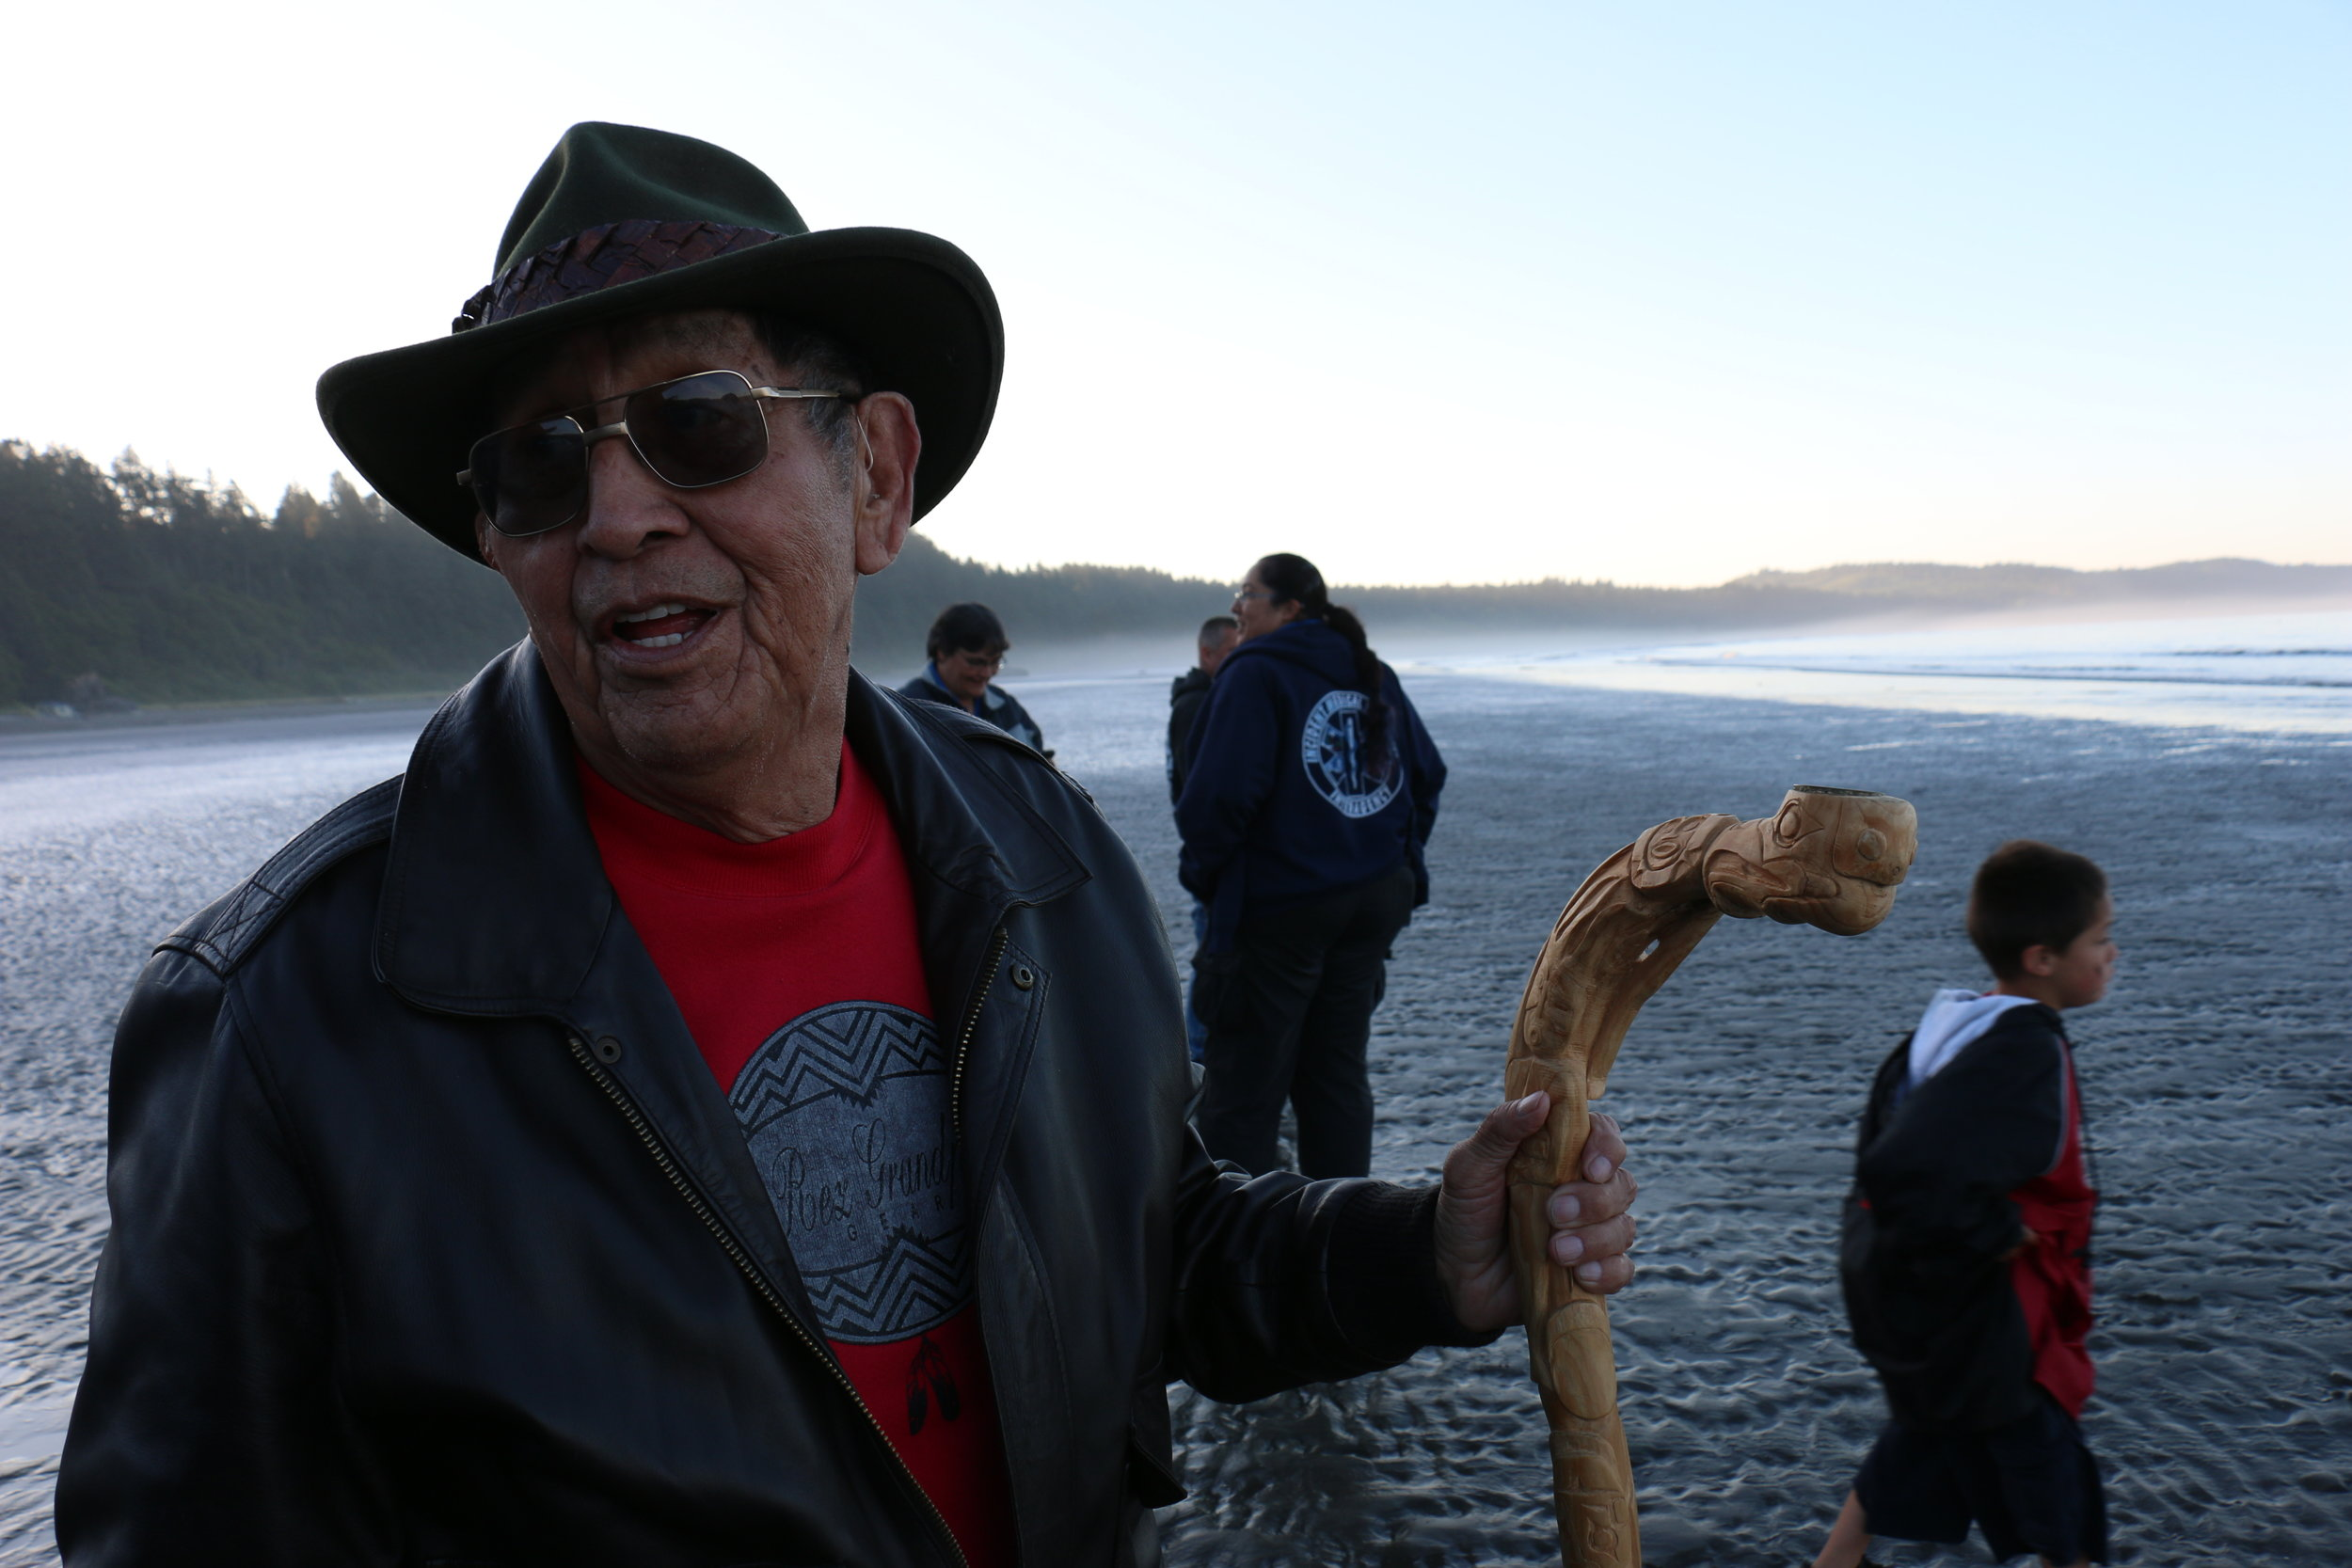 Harold Curley, a direct descendant of the legendary Chief Taholah who signed the 1855 Quinault Treaty, watches canoes depart in 2017. (Julian Brave NoiseCat)